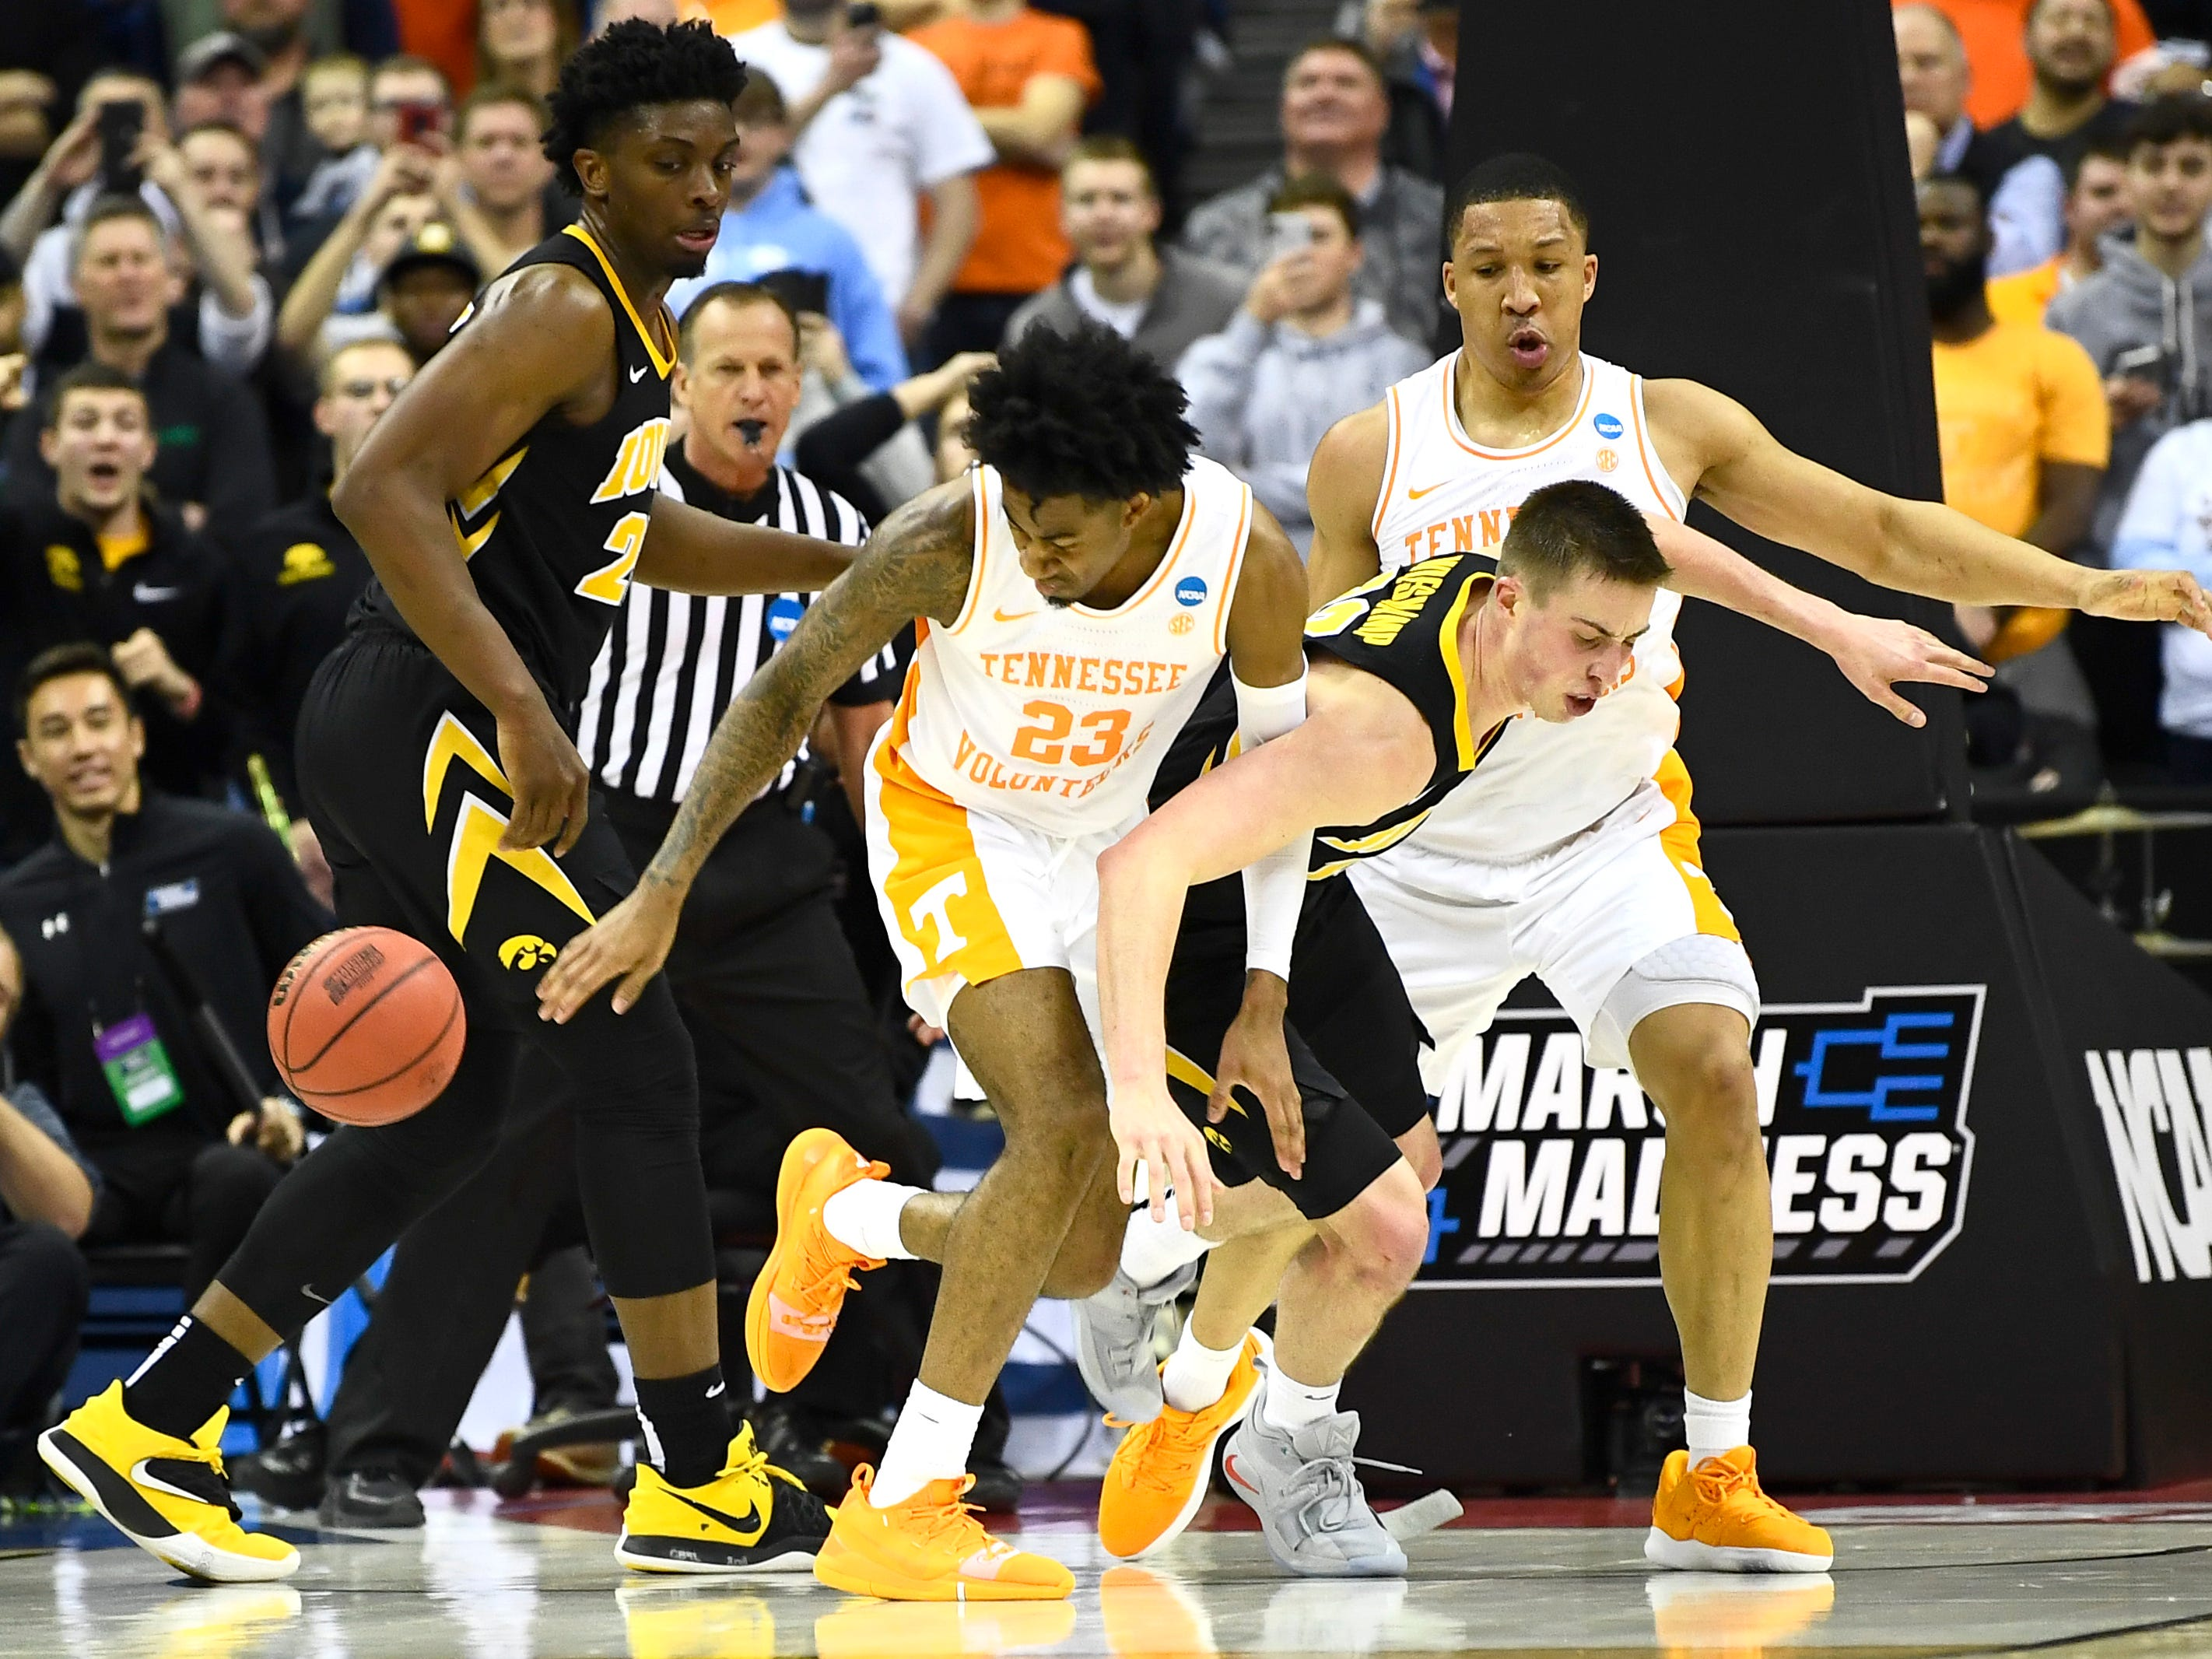 Tennessee guard Jordan Bowden (23) and Iowa guard Joe Wieskamp (10) battle for a rebound during UT's overtime win in the second round of the NCAA Tournament at Nationwide Arena in Columbus, Ohio, Sunday, March 24, 2019.